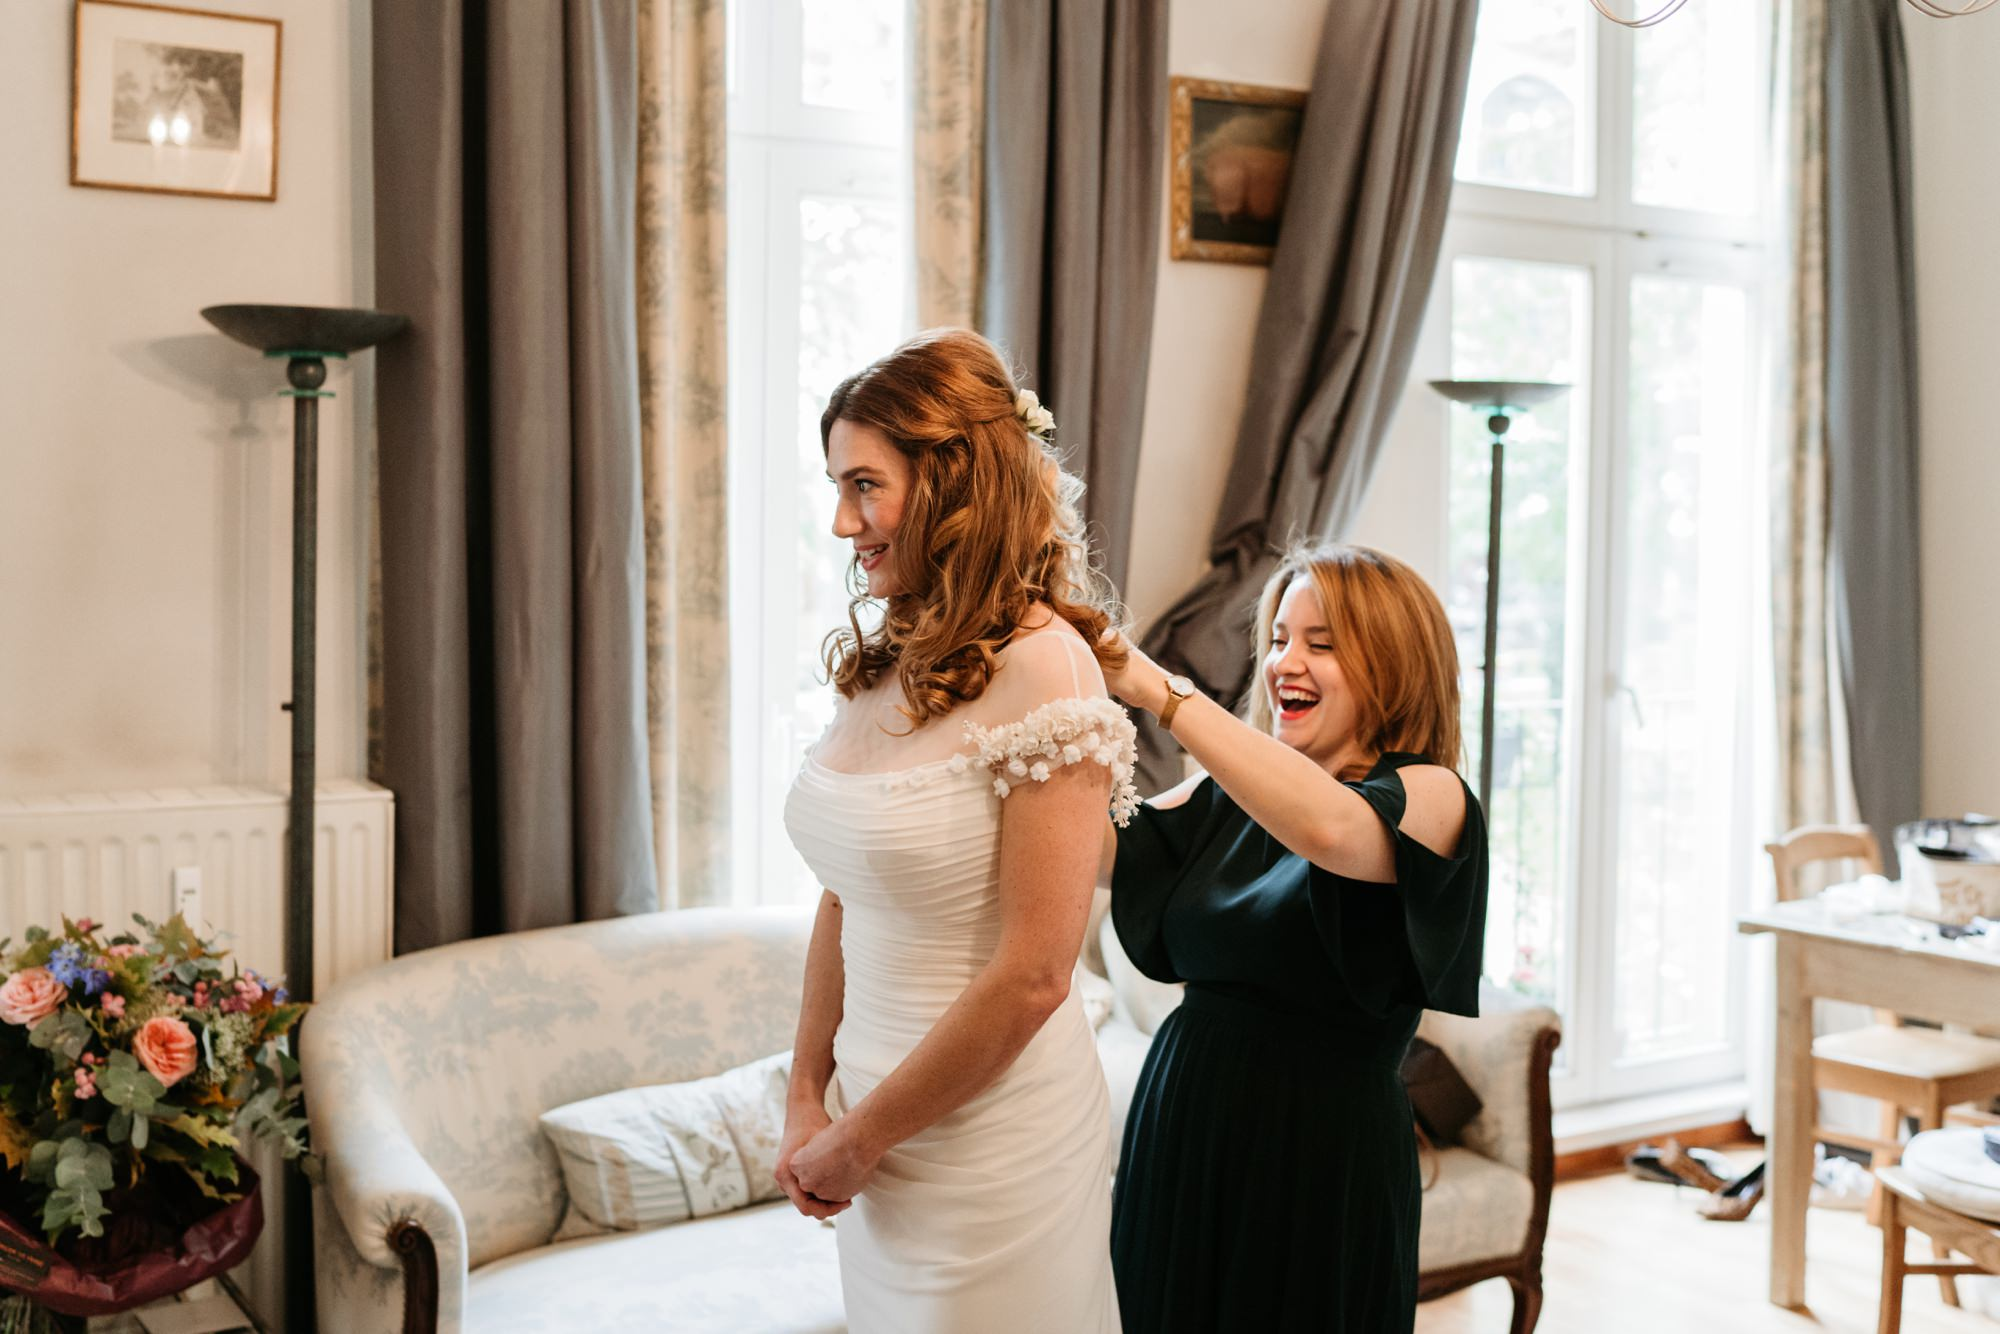 natural wedding photography bruselas 0021 1